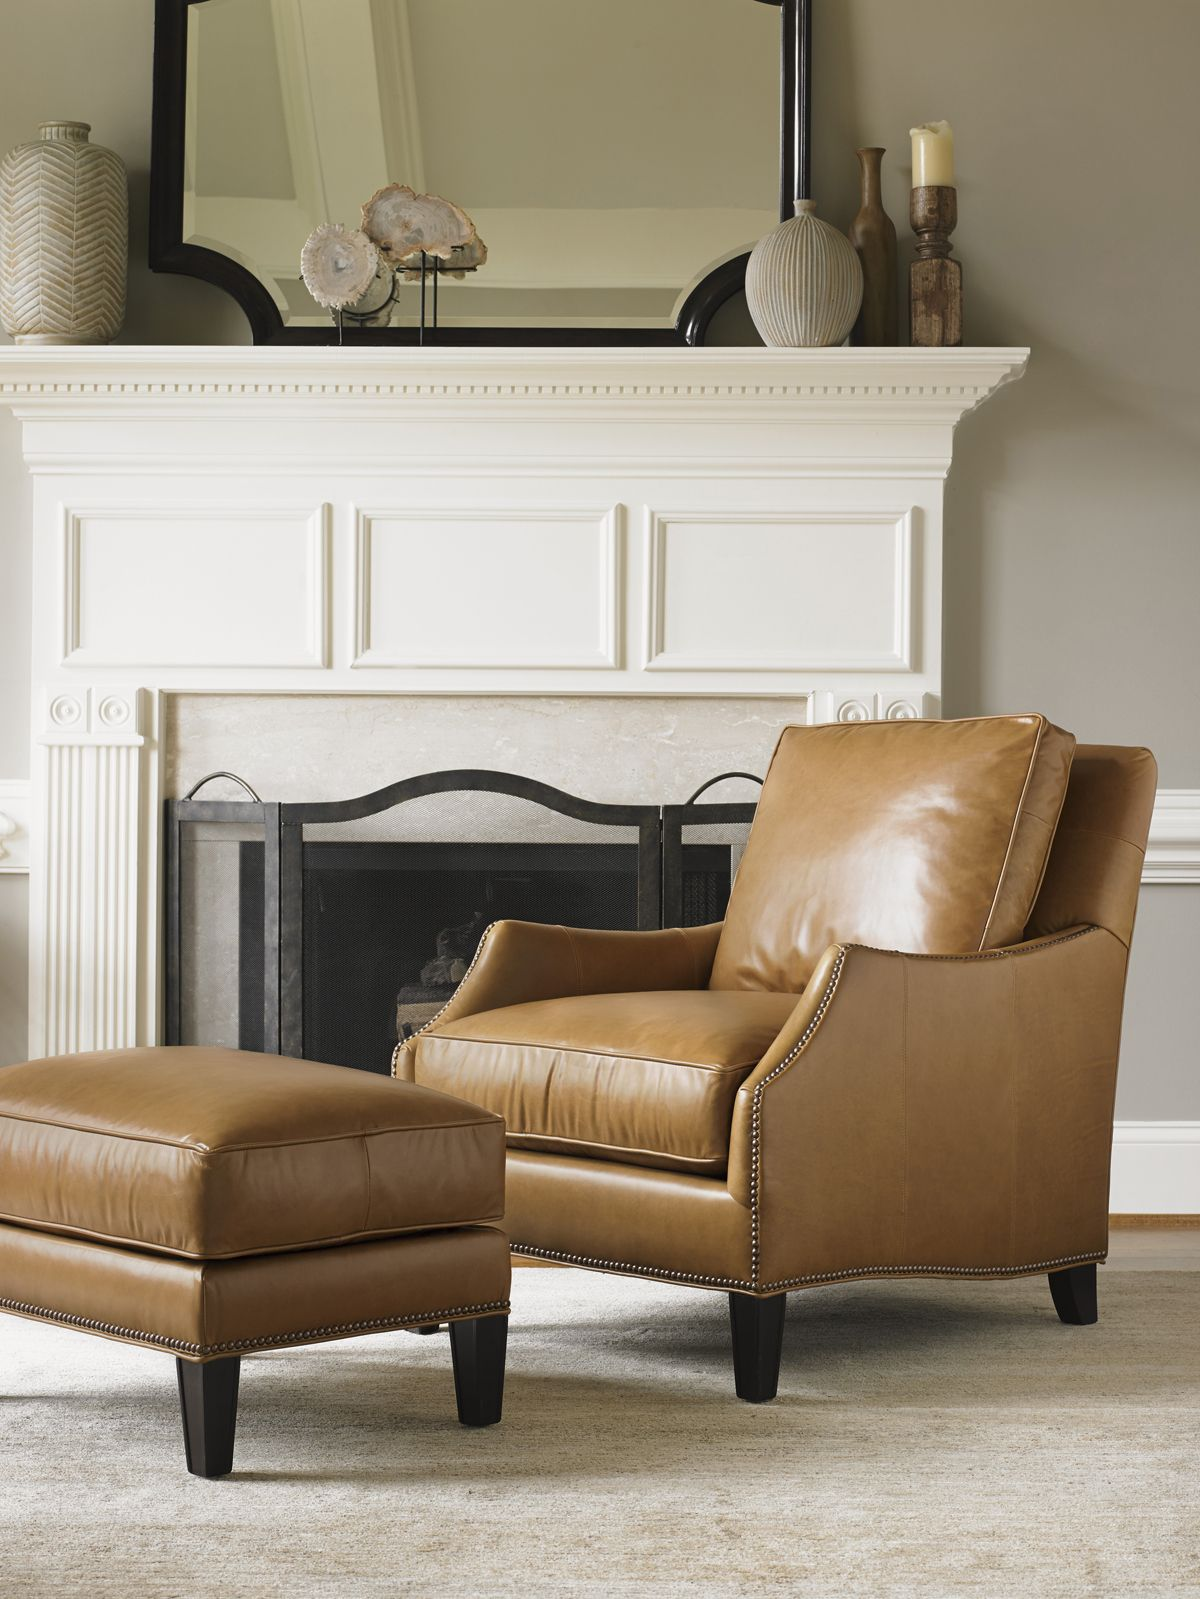 butterscotch leather chair and ottoman from lexington furniture